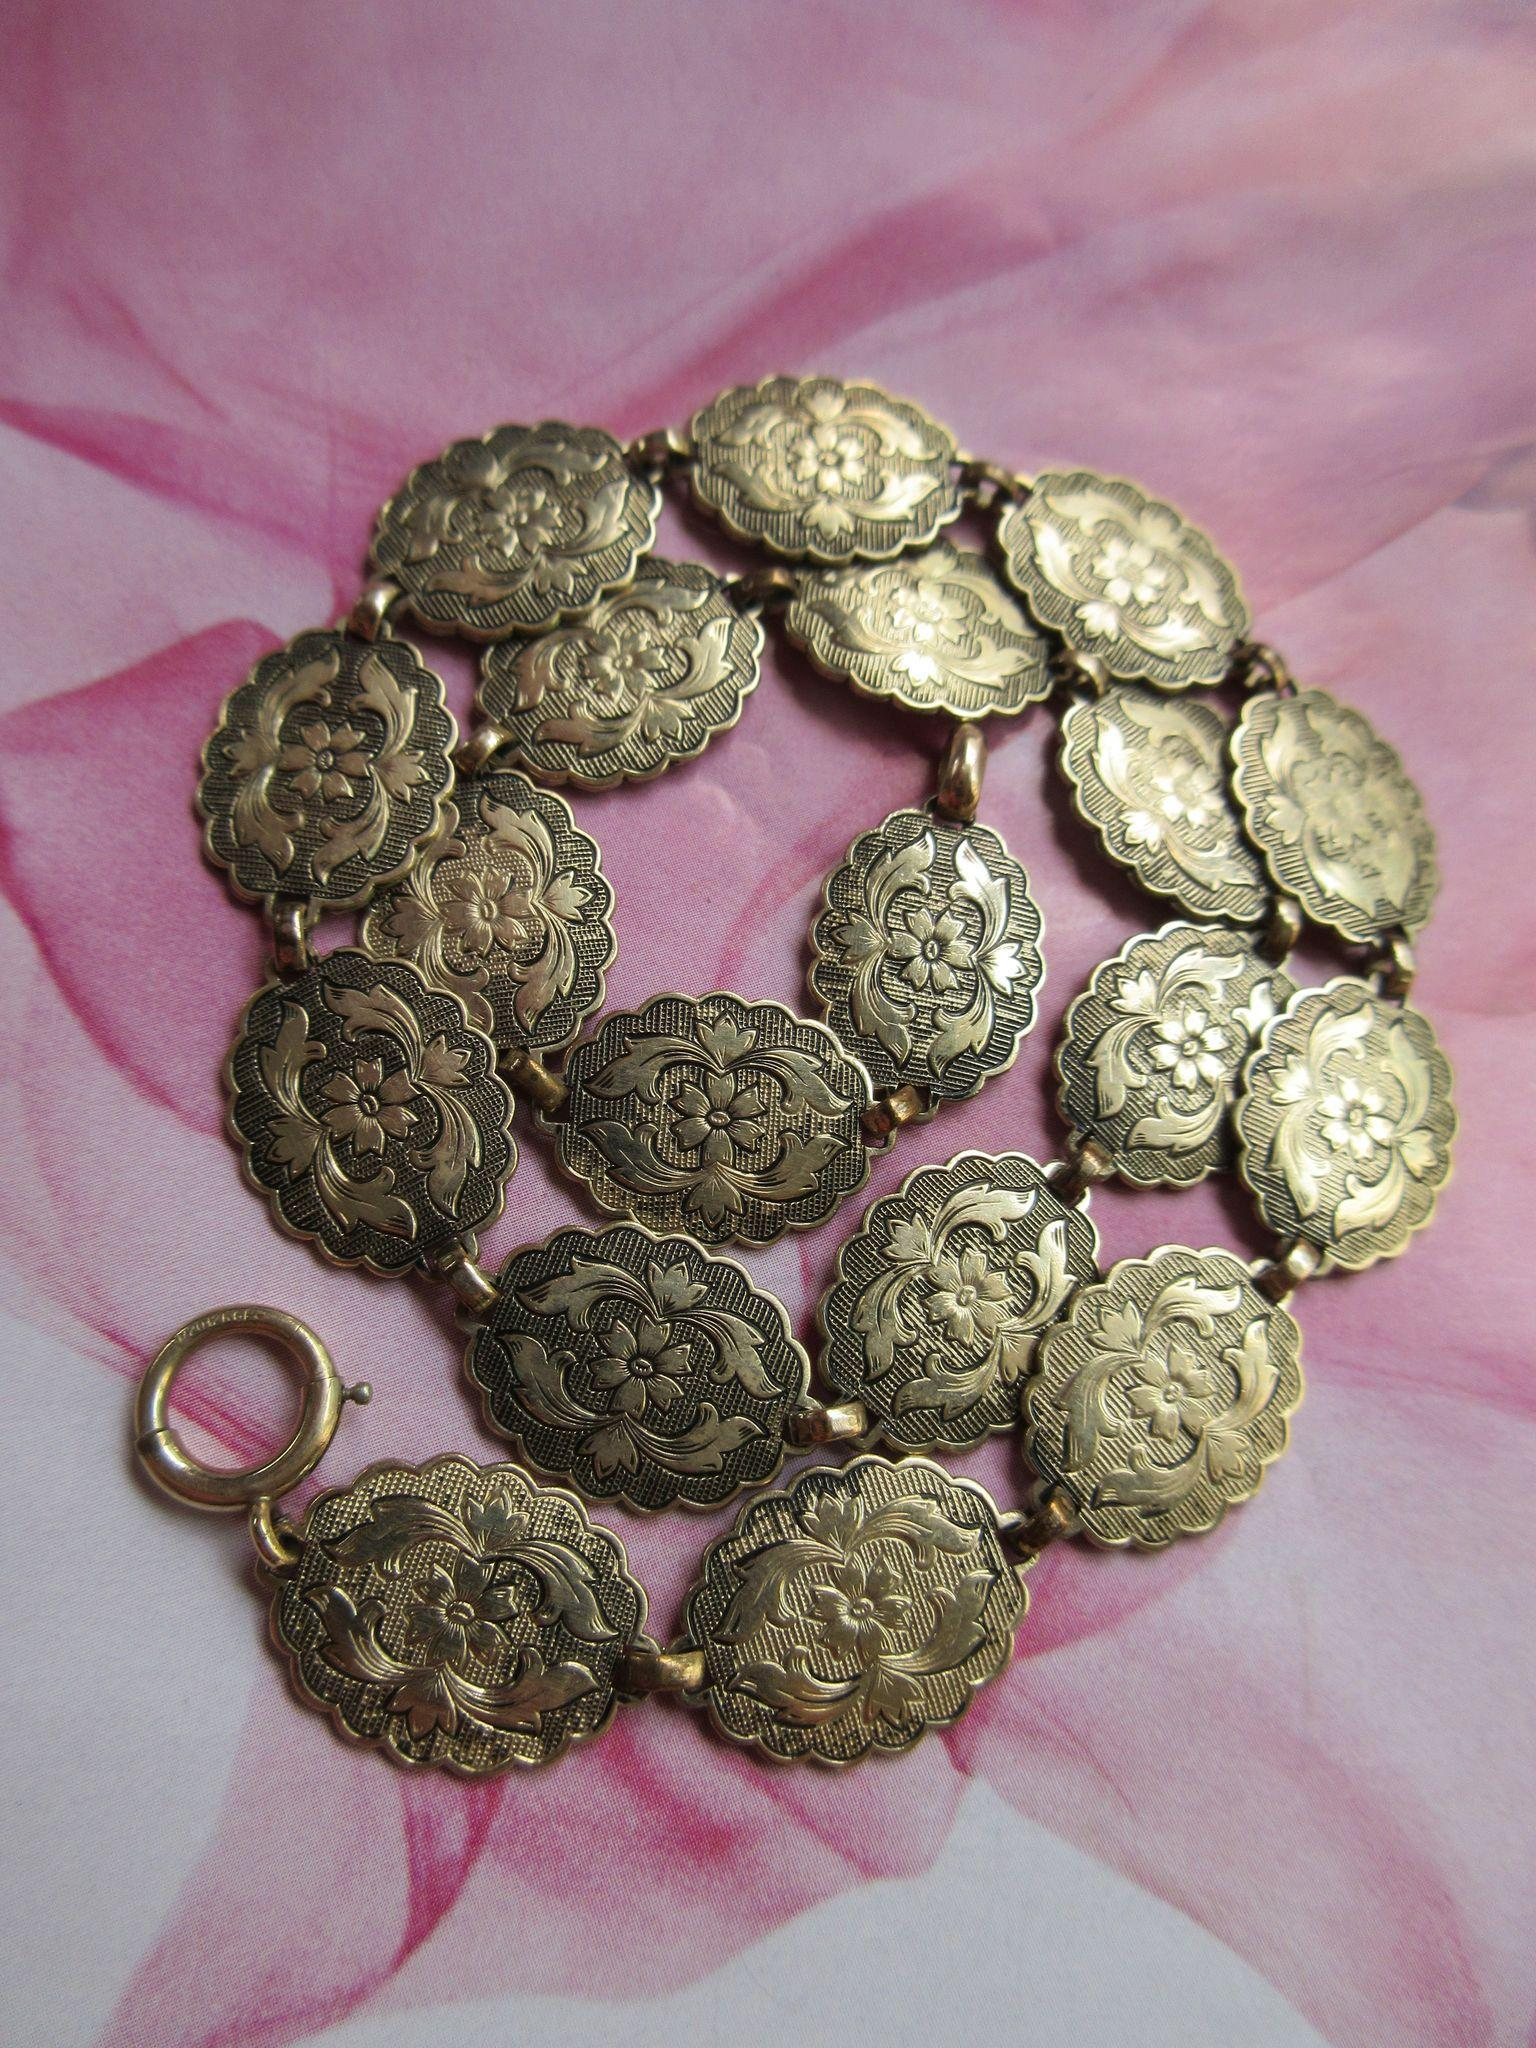 Vintage Bliss Brothers Gold Fill Floral Necklace Circa 1920